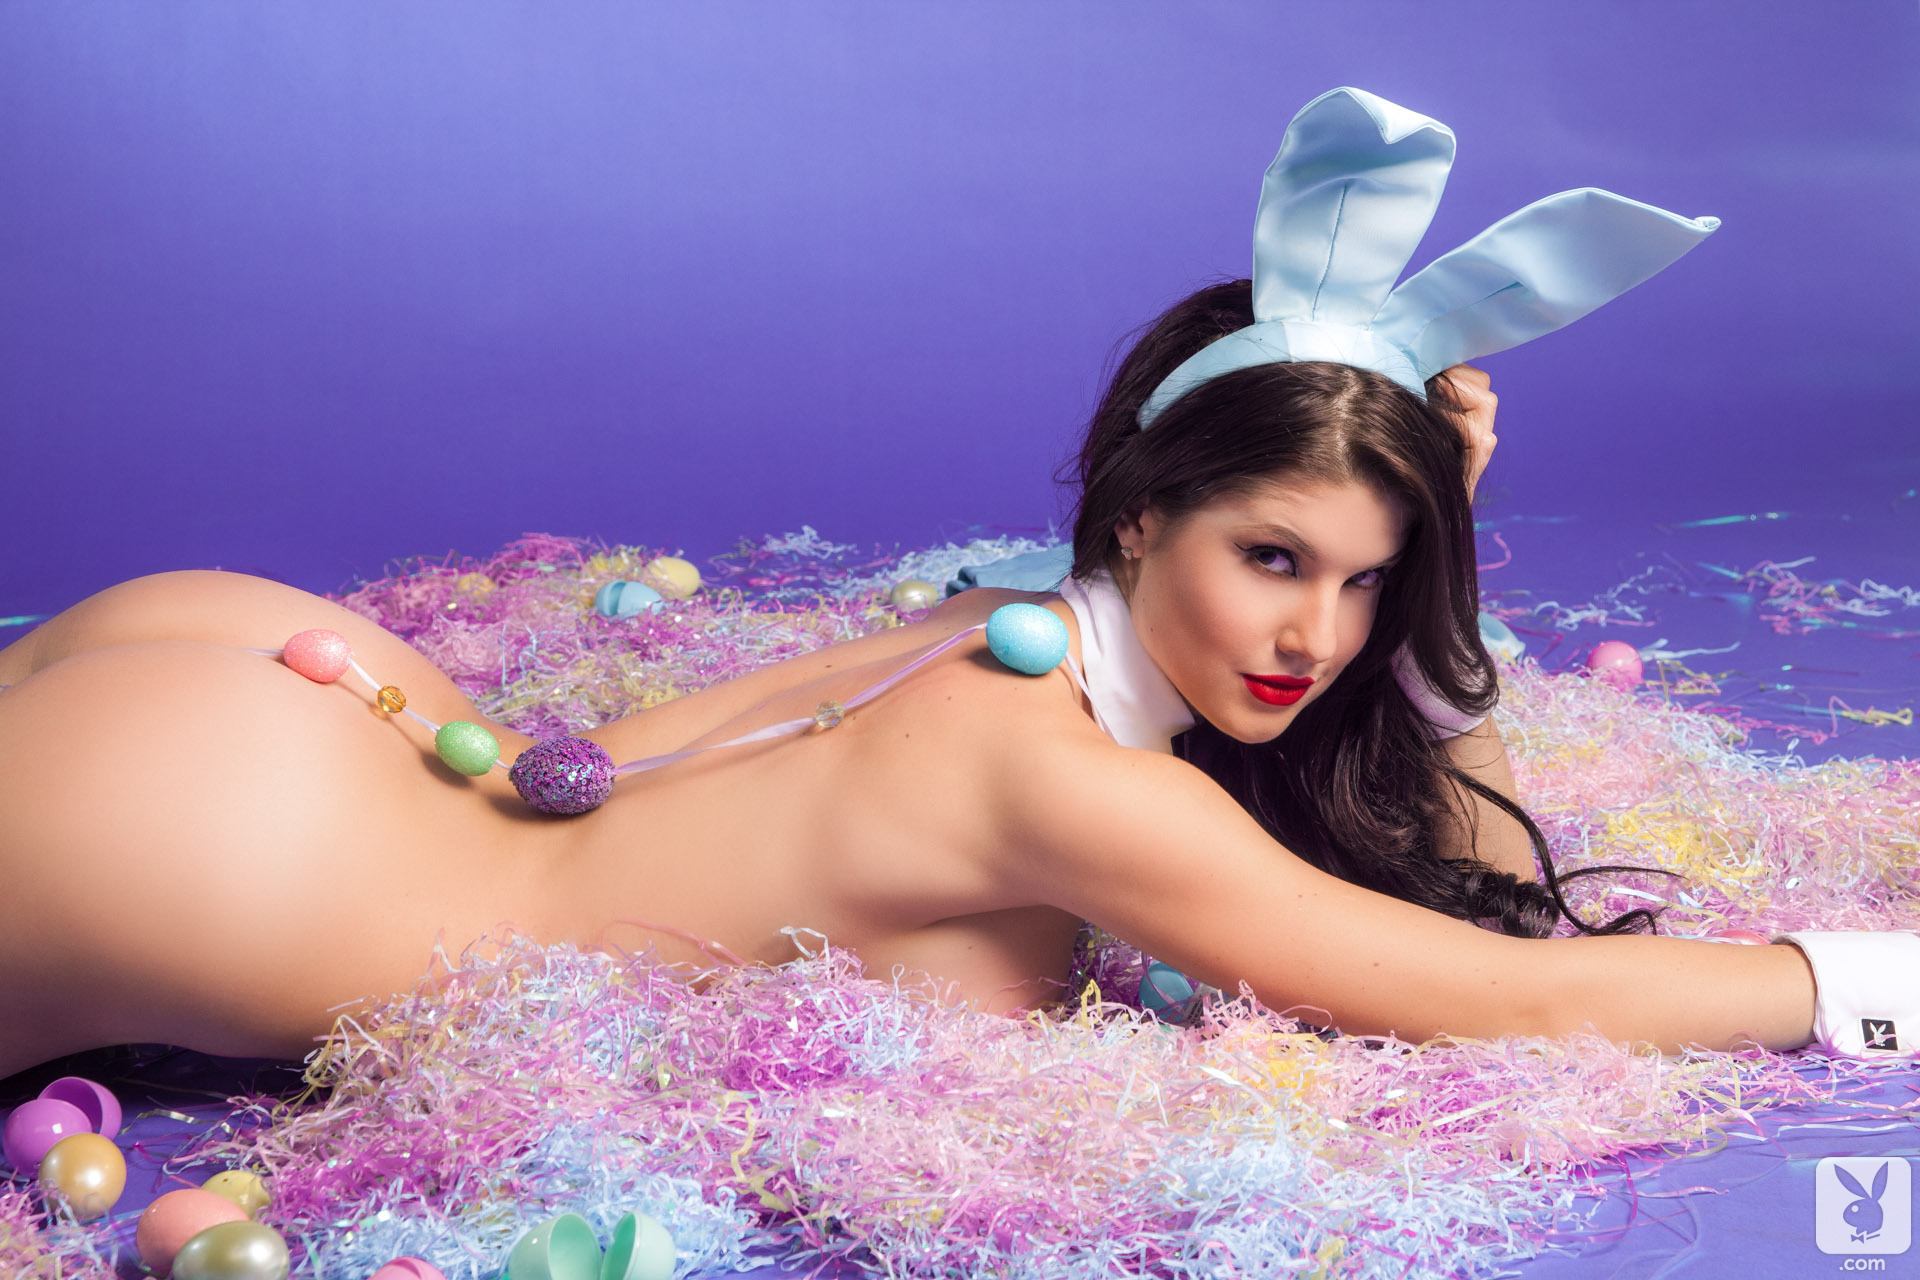 Sexy easter rabbit screensaver